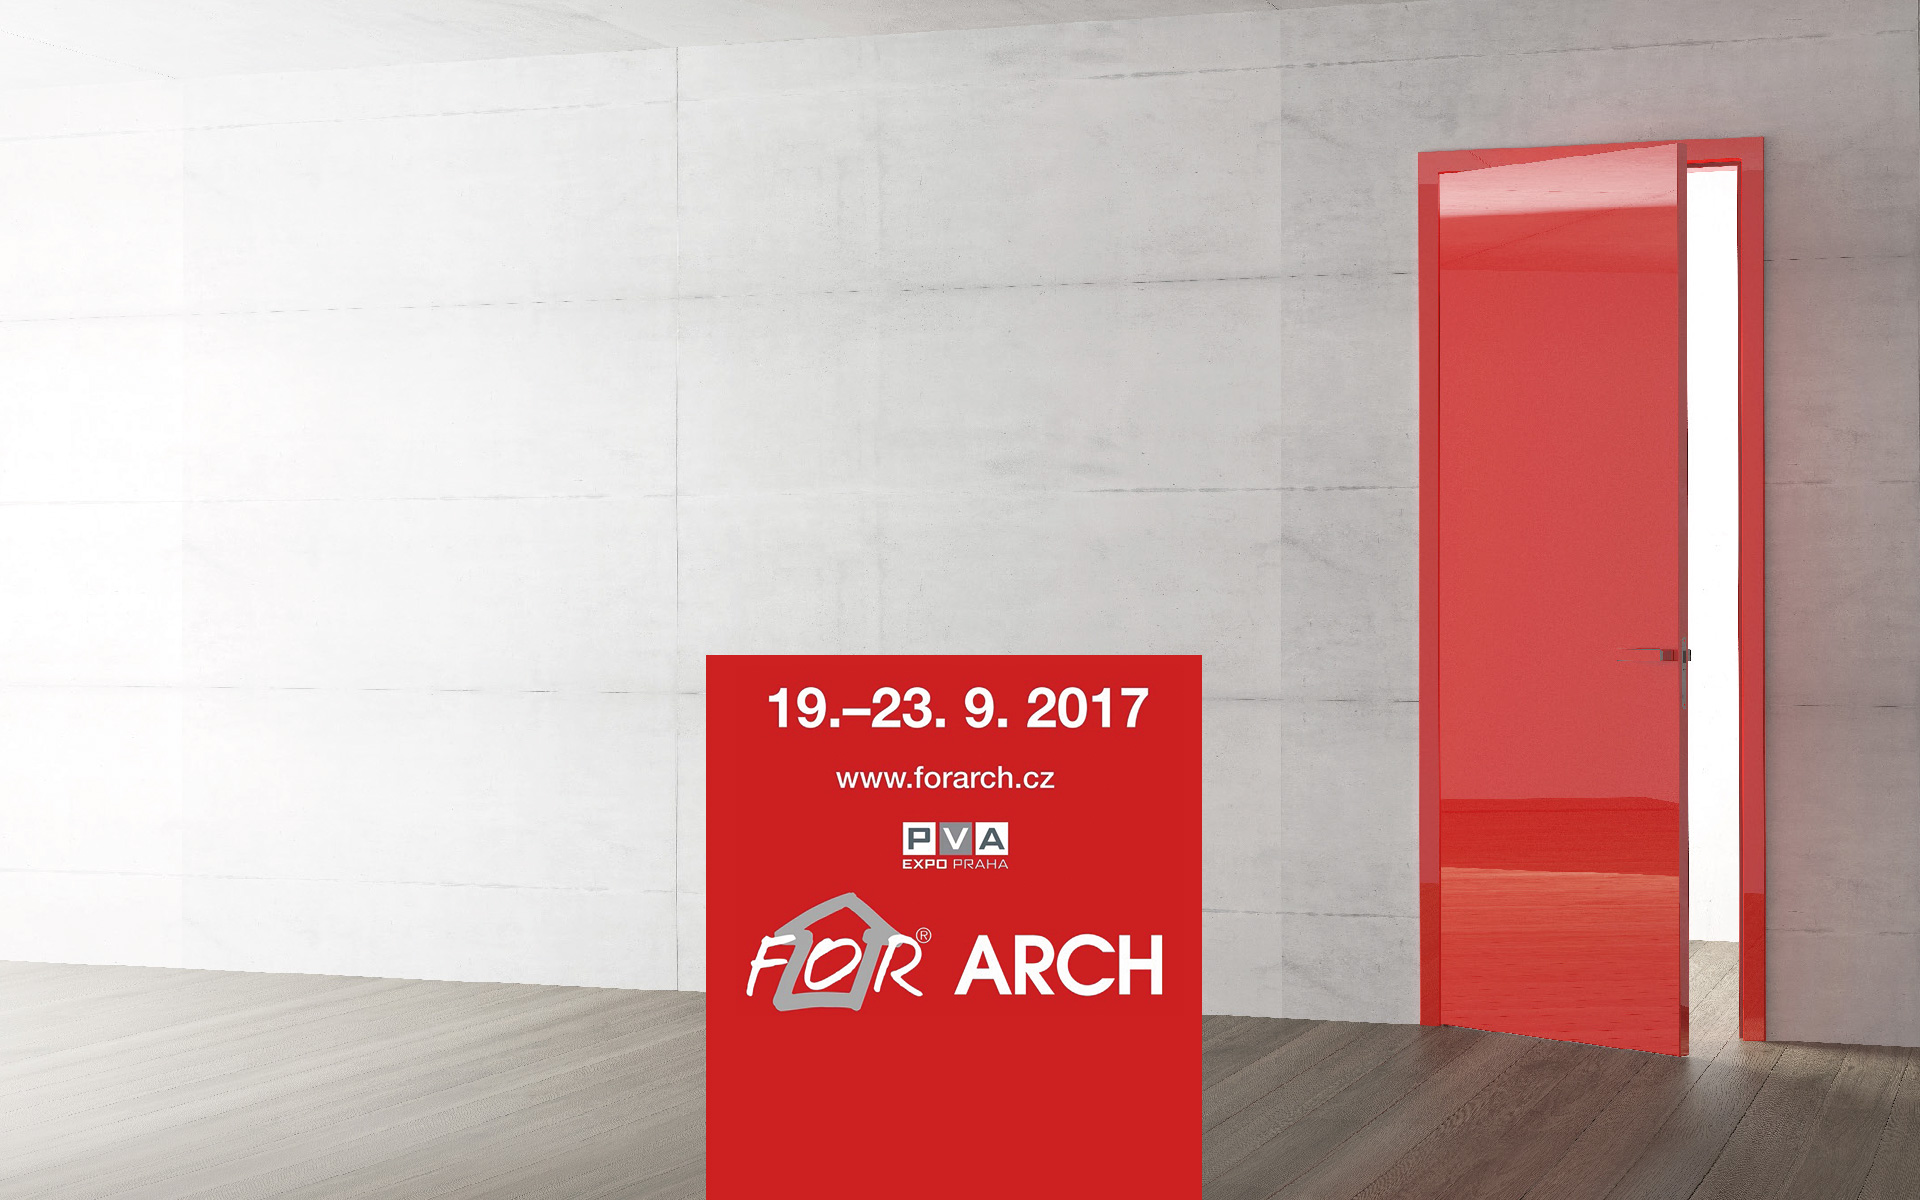 Come to see us on the FOR ARCH 2017. You will see plenty of innovations.